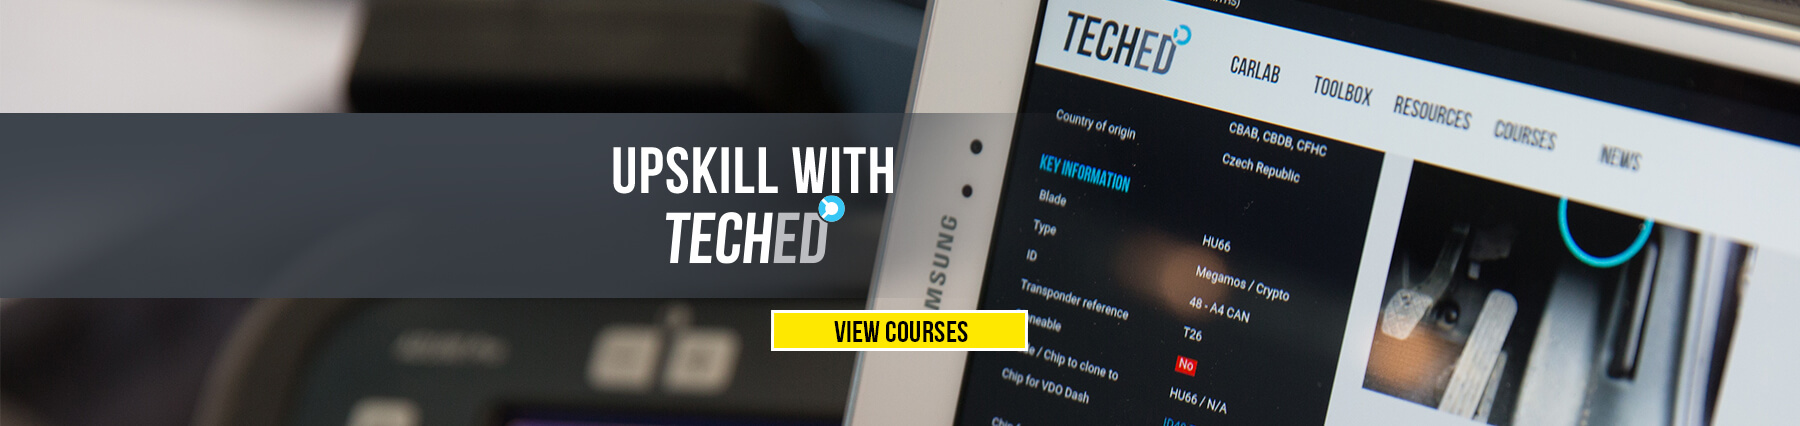 Upskill with TECHED Since 1926